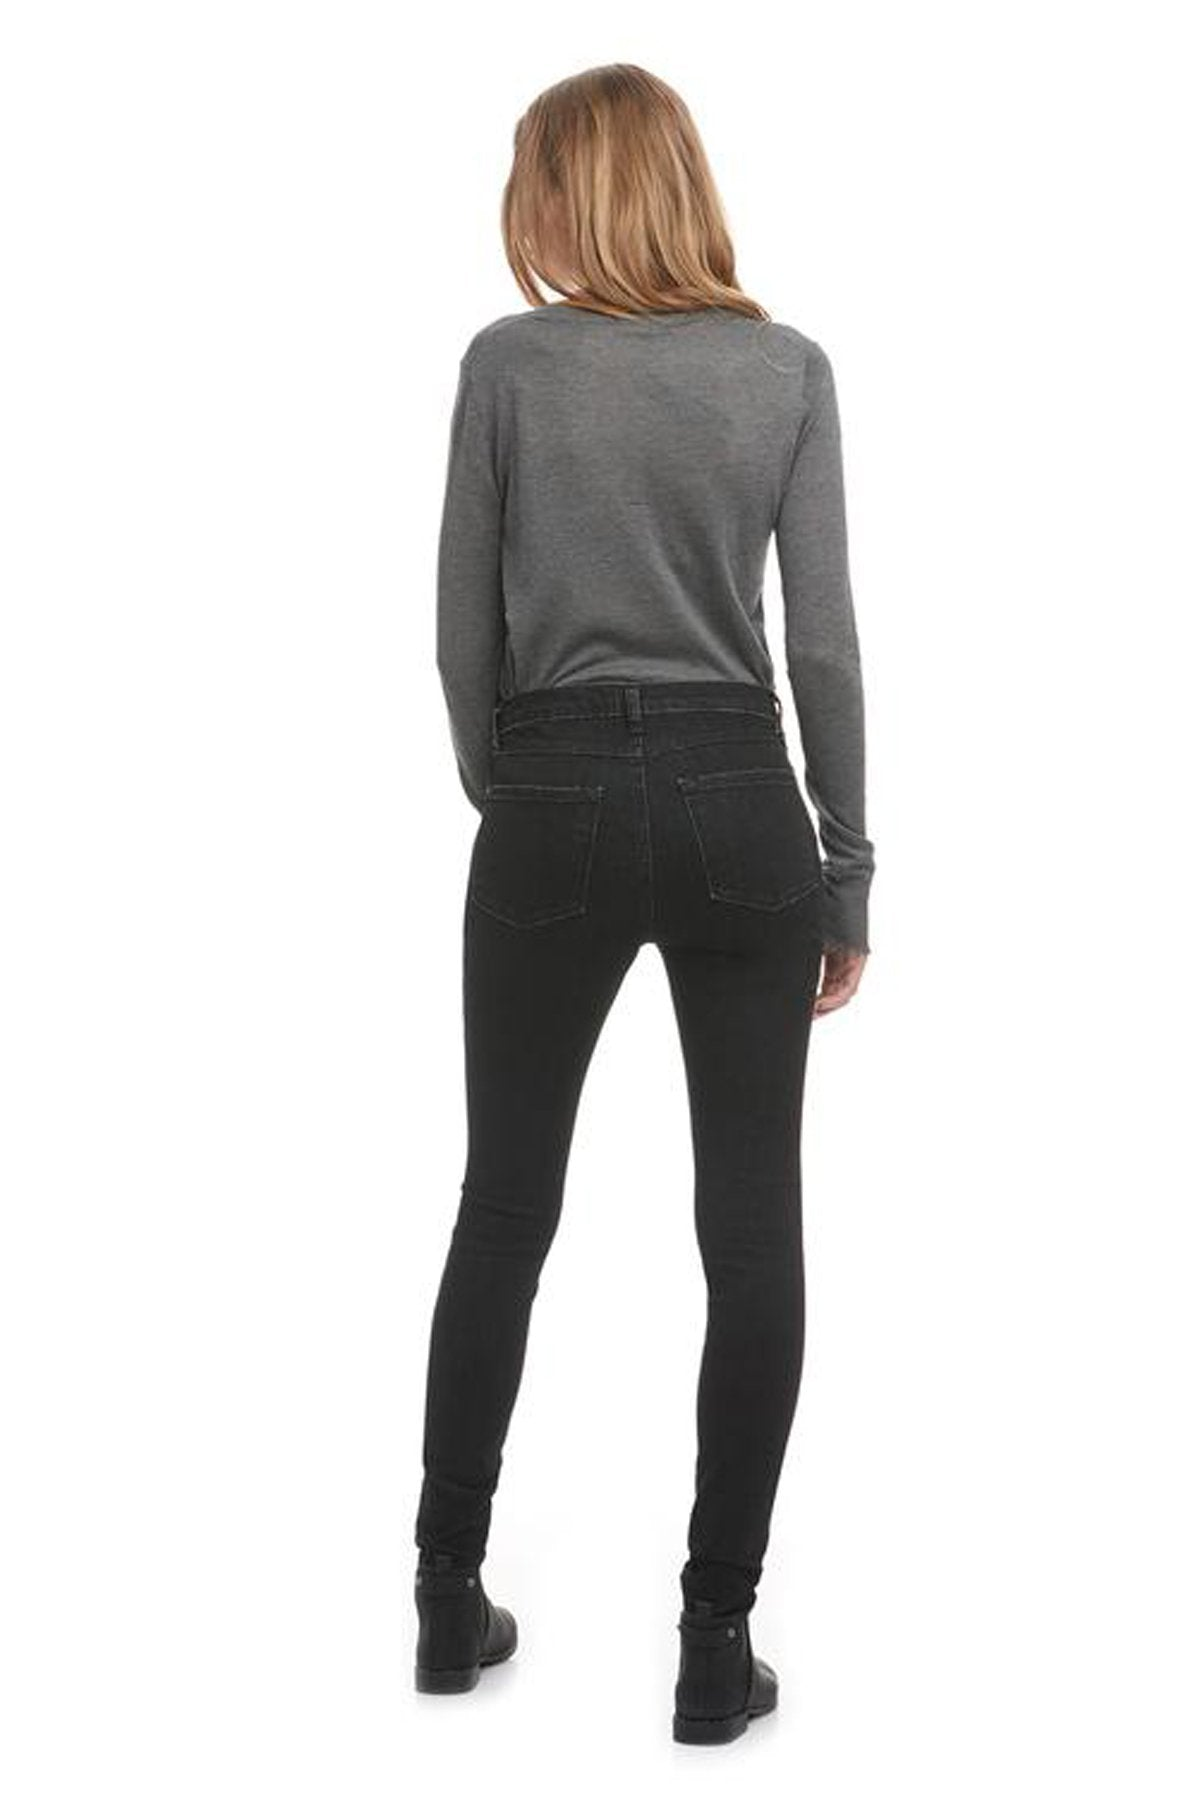 High Rise Skinny Yoga Jean, Desirade, back view, high waist, skinny fit, 30 inch inseam, sizes 24-34, made in Canada